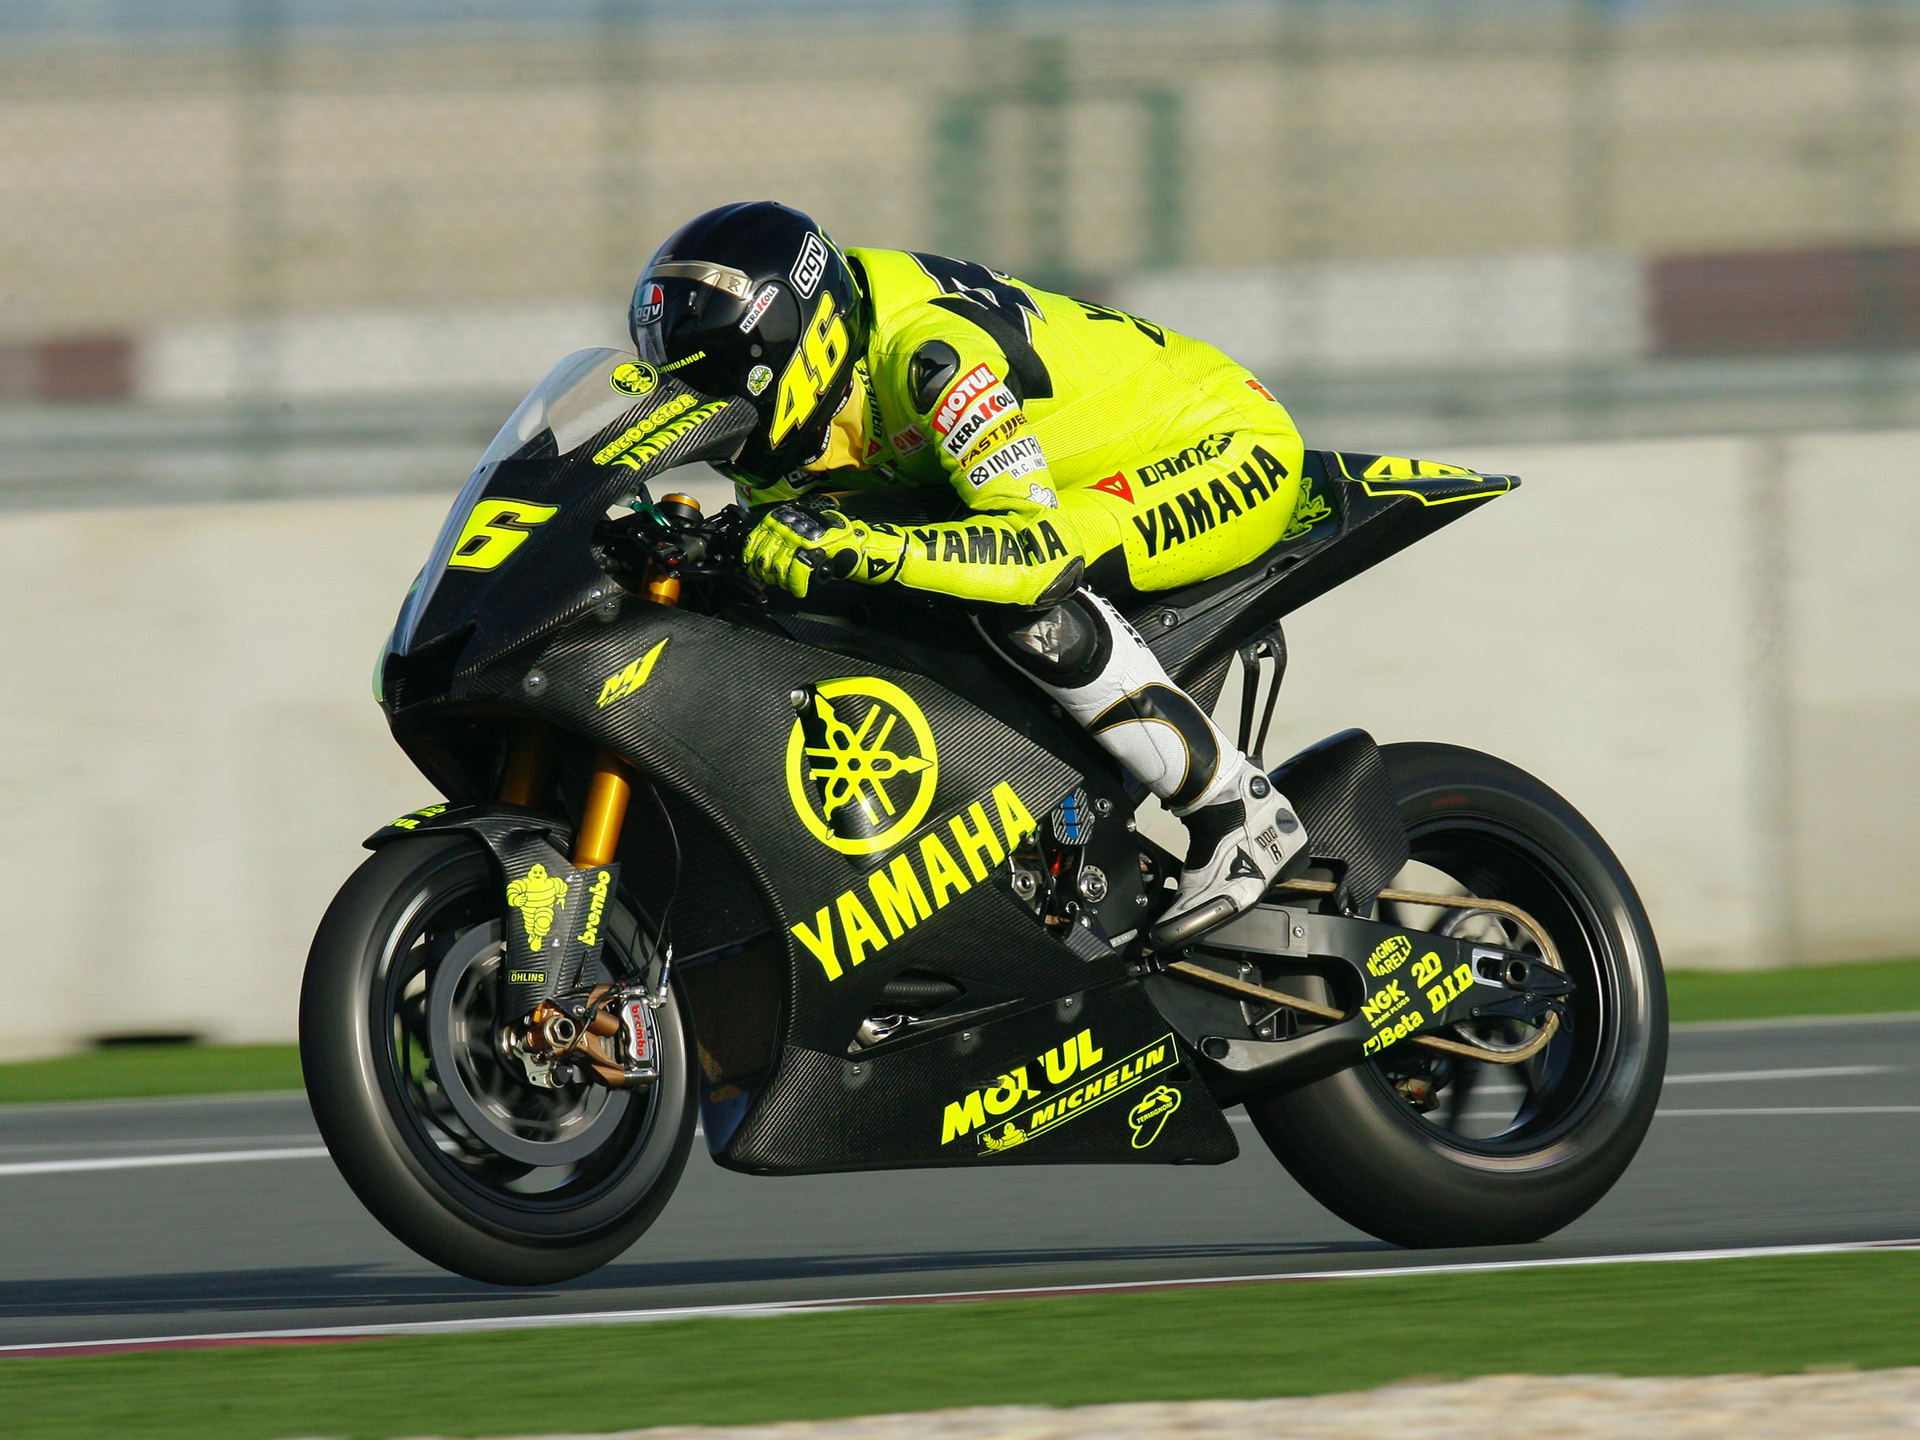 Car Wallpaper For Mobile Yamaha Yzr M1 Photos Photogallery With 9 Pics Carsbase Com